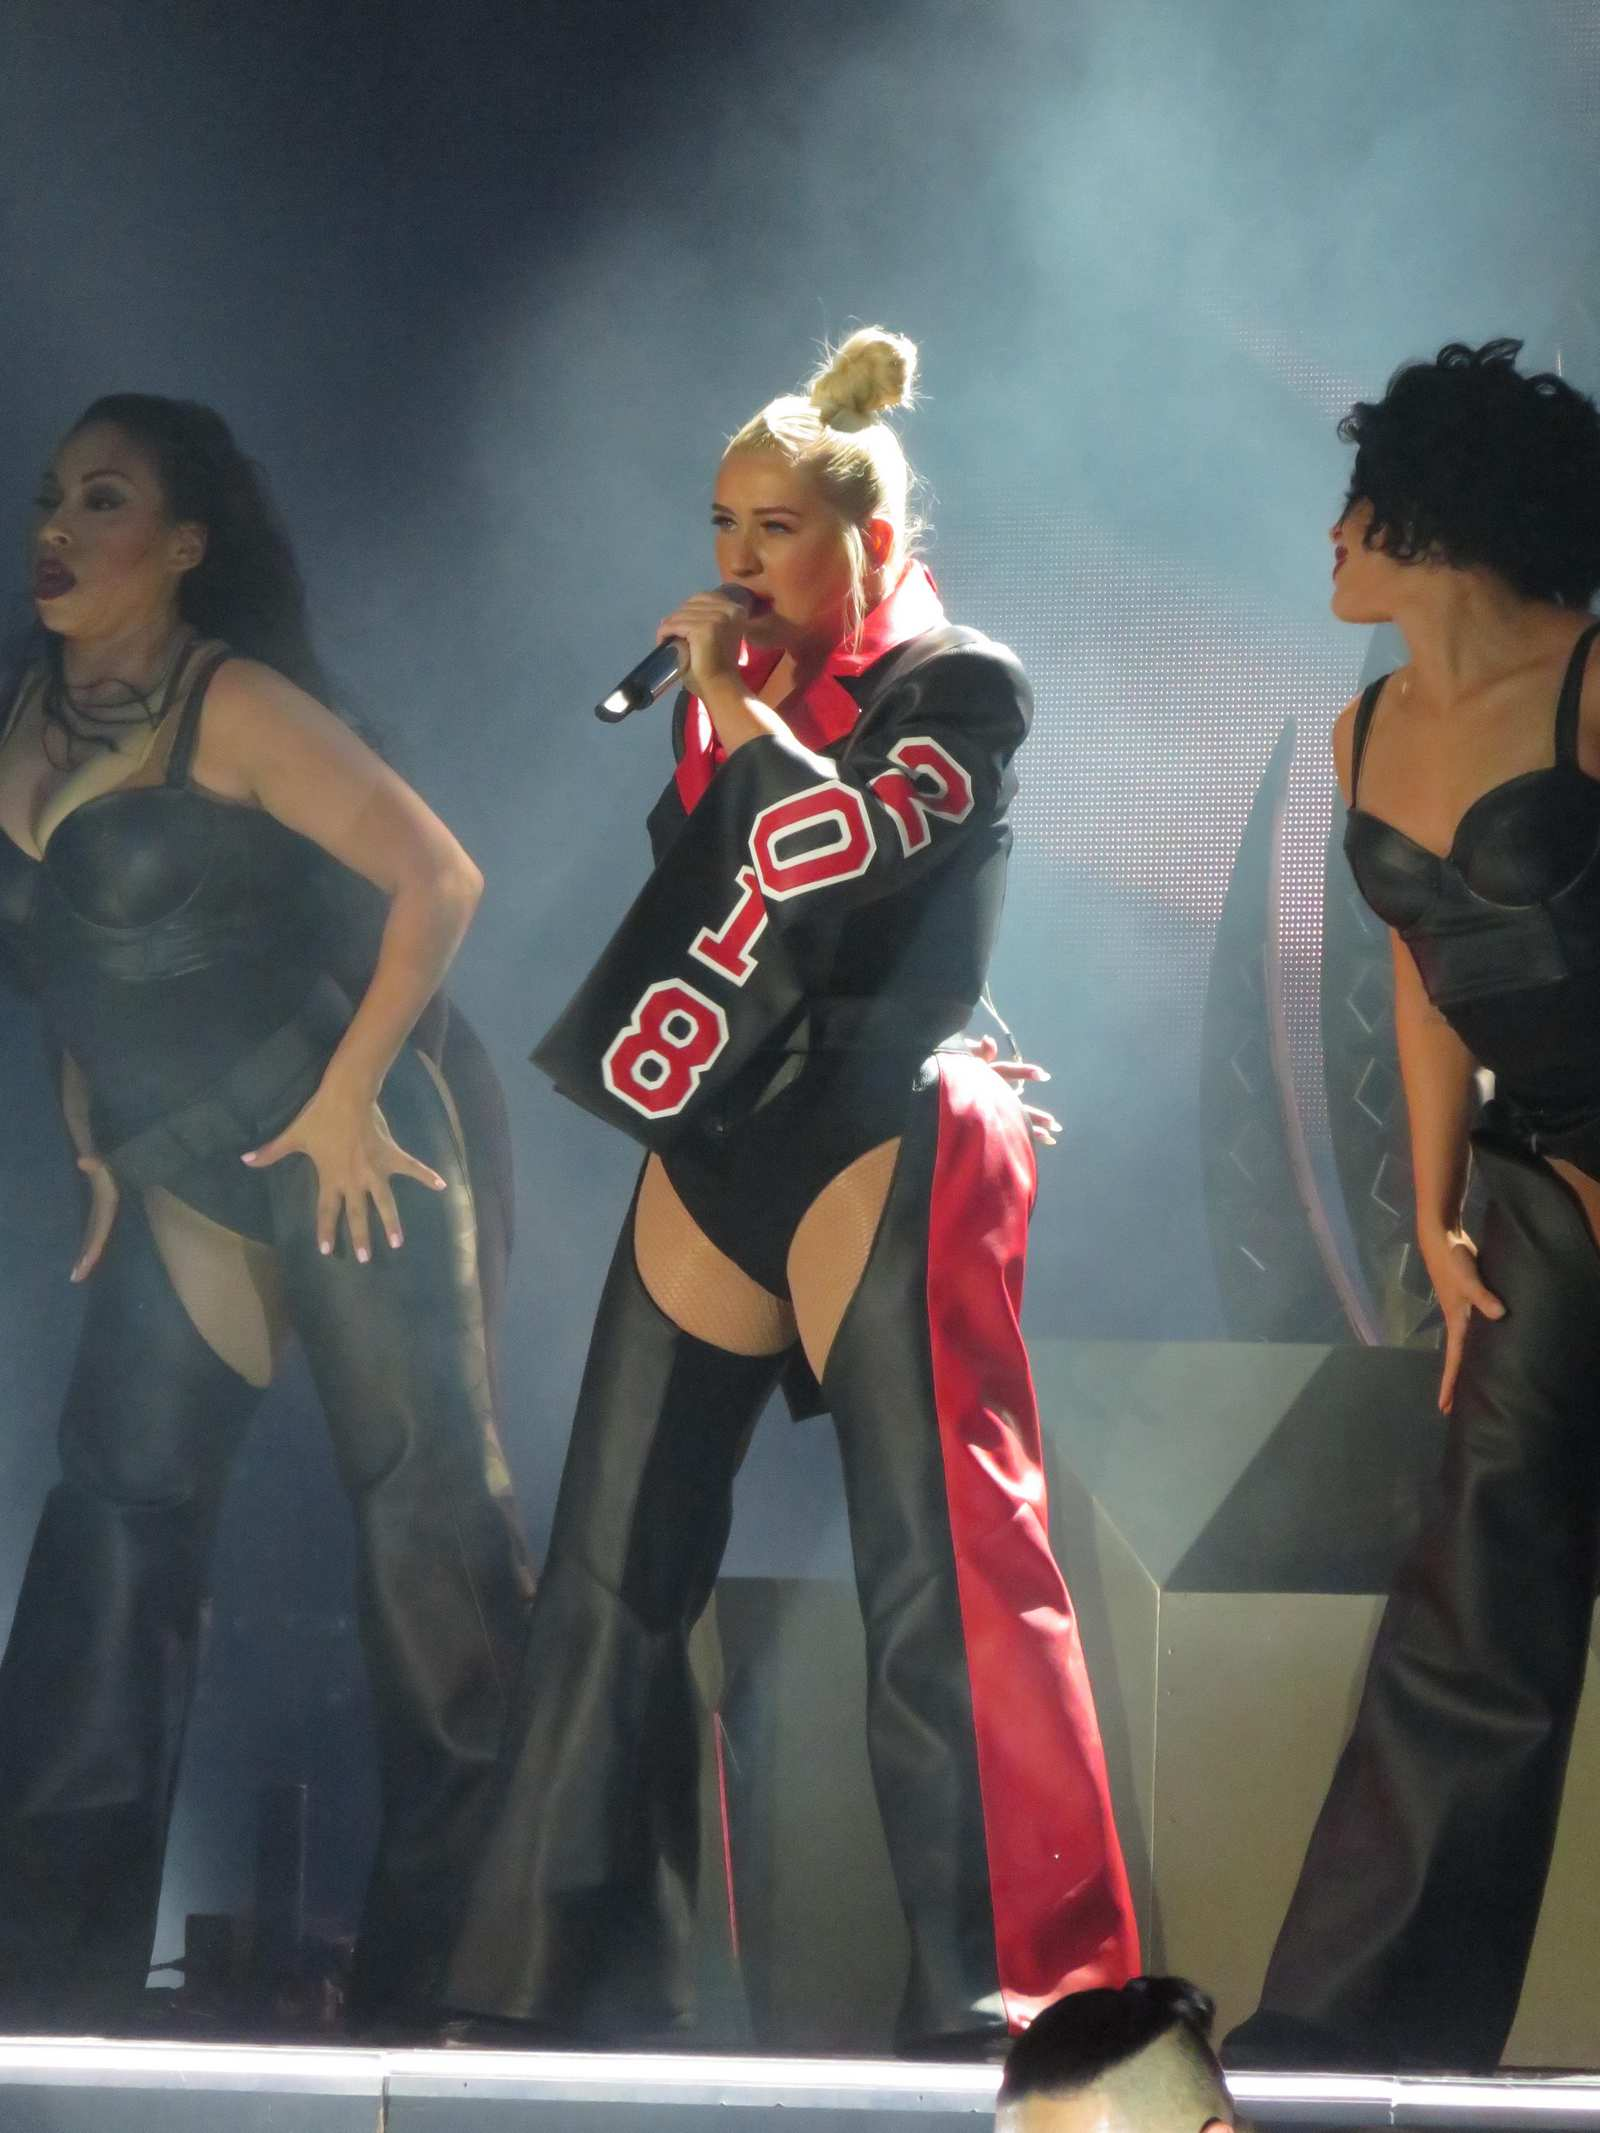 Christina_Aguilera_-_performs_at_the_Greek_Theater_in_Los_Angeles2C_26_October_2018-09.jpg